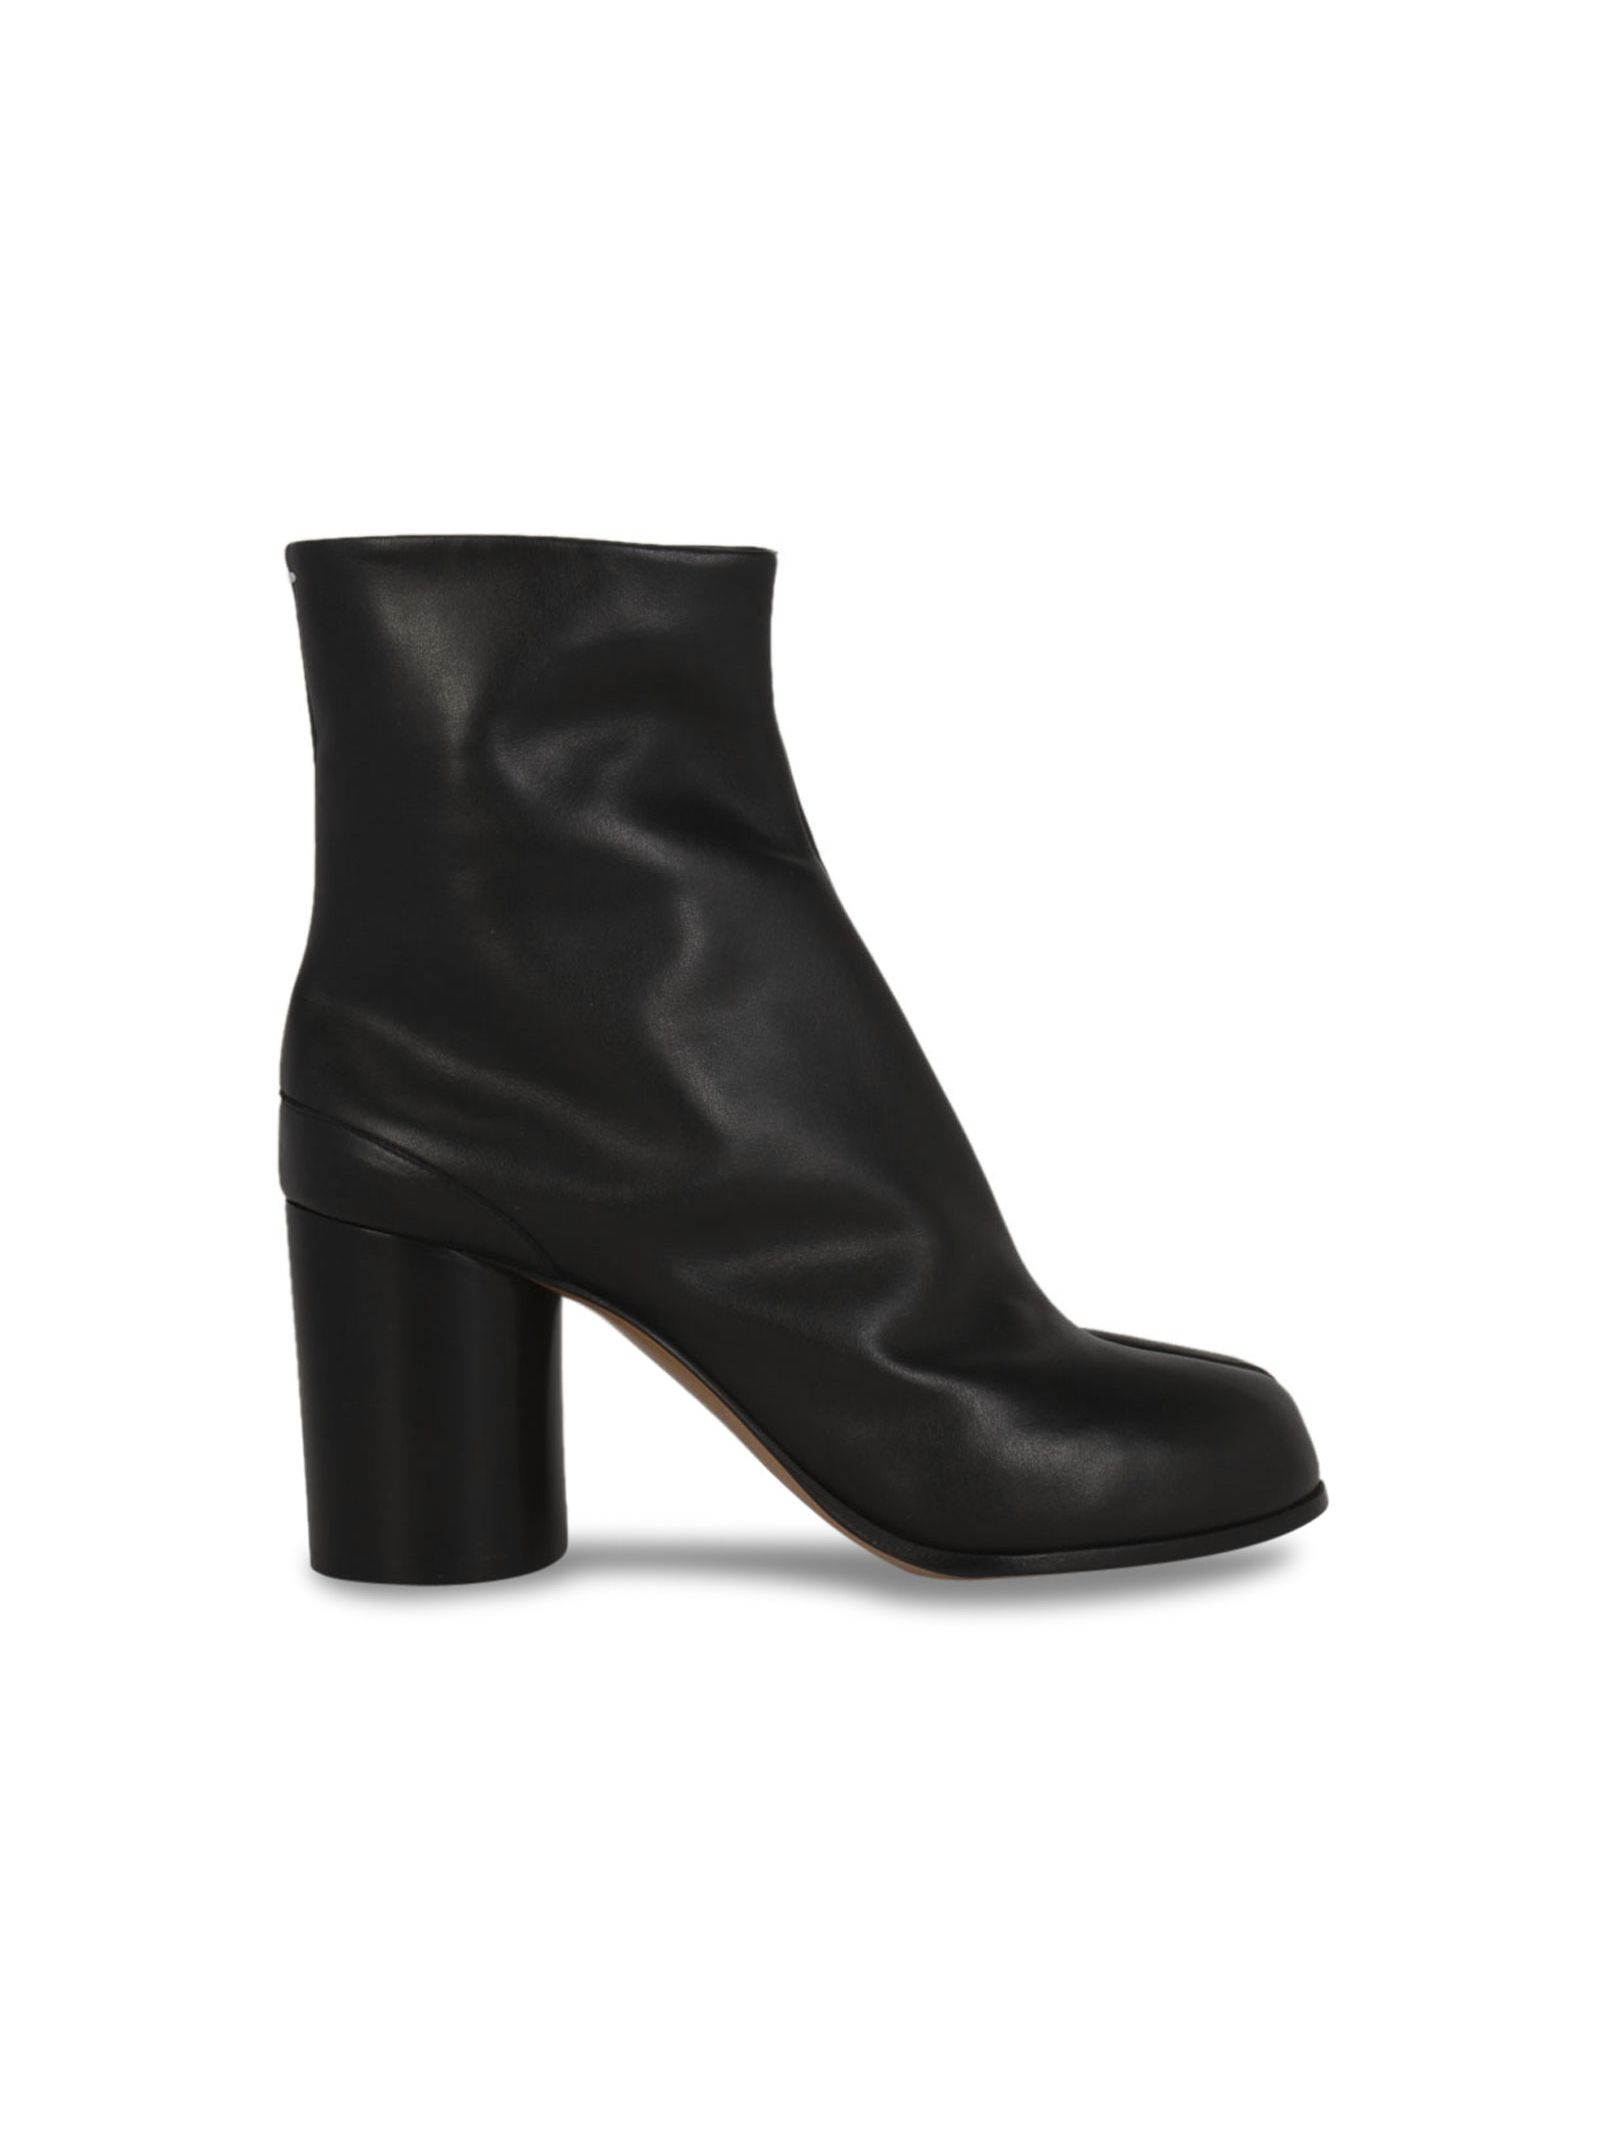 Maison Margiela Tabi Ankle Boots - MM6 Maison Margiela - Eyes